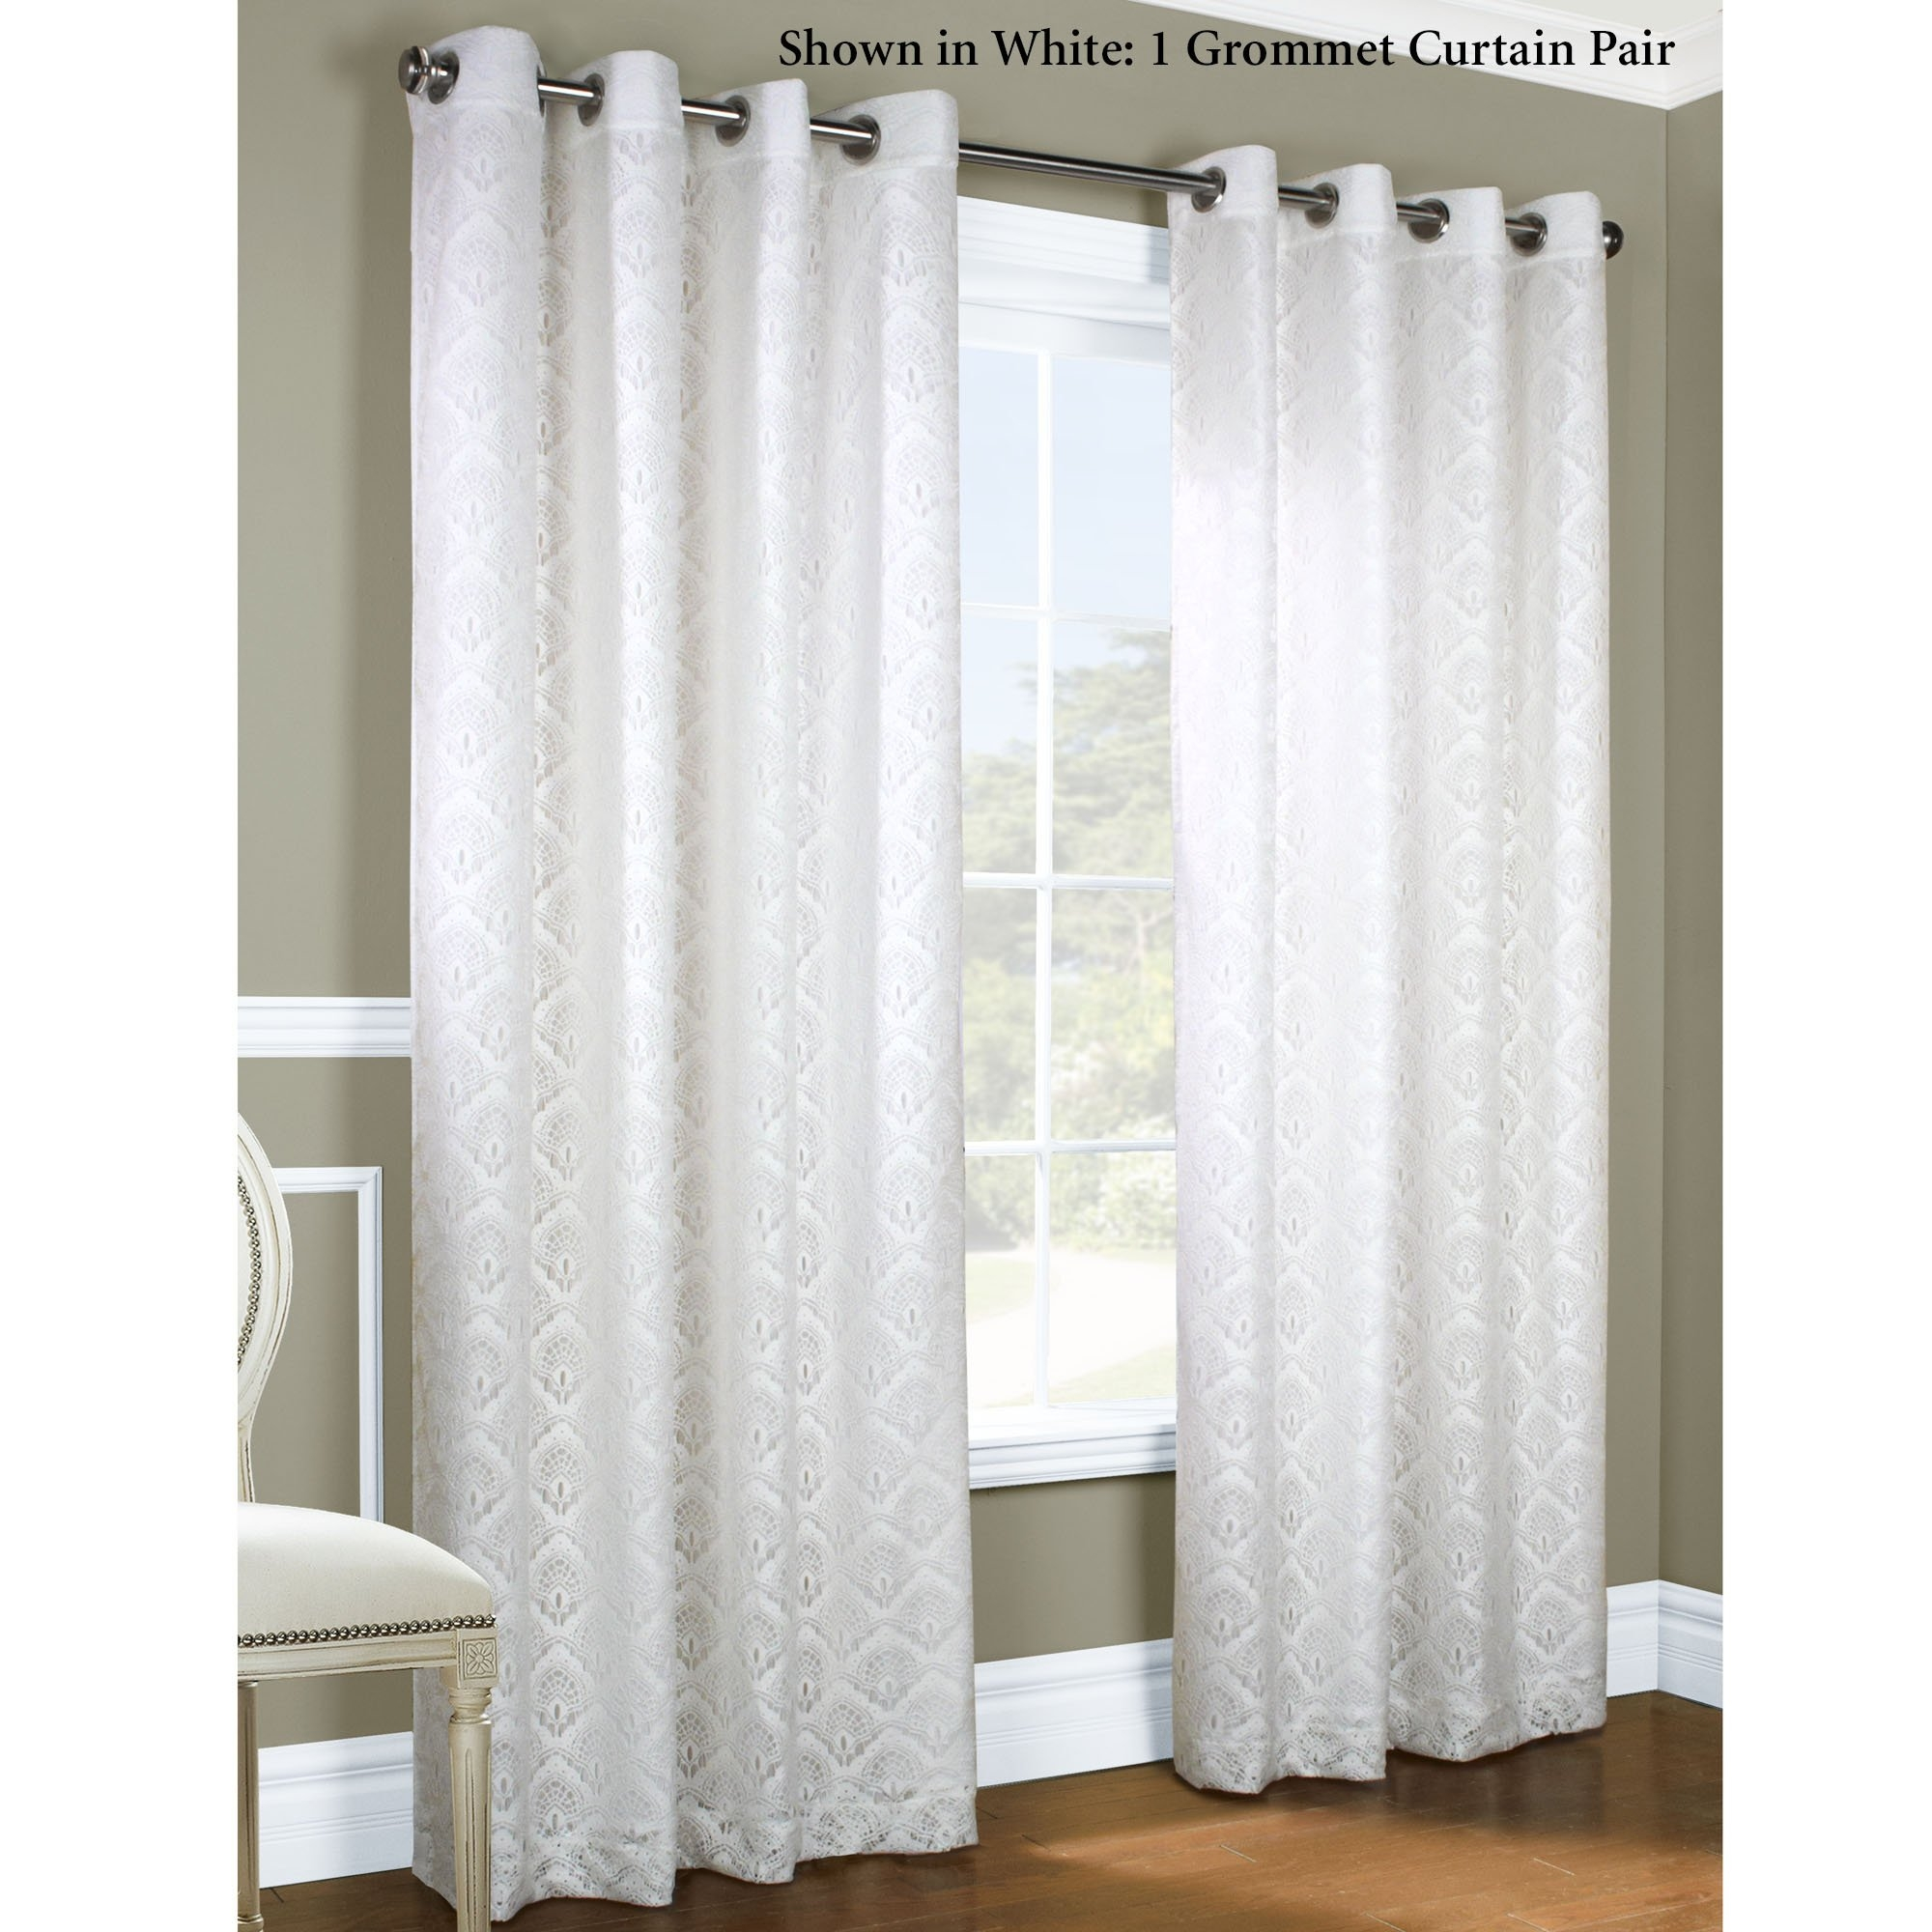 White Curtains With Blackout Lining Regarding White Curtains With Blackout Lining (Image 15 of 15)